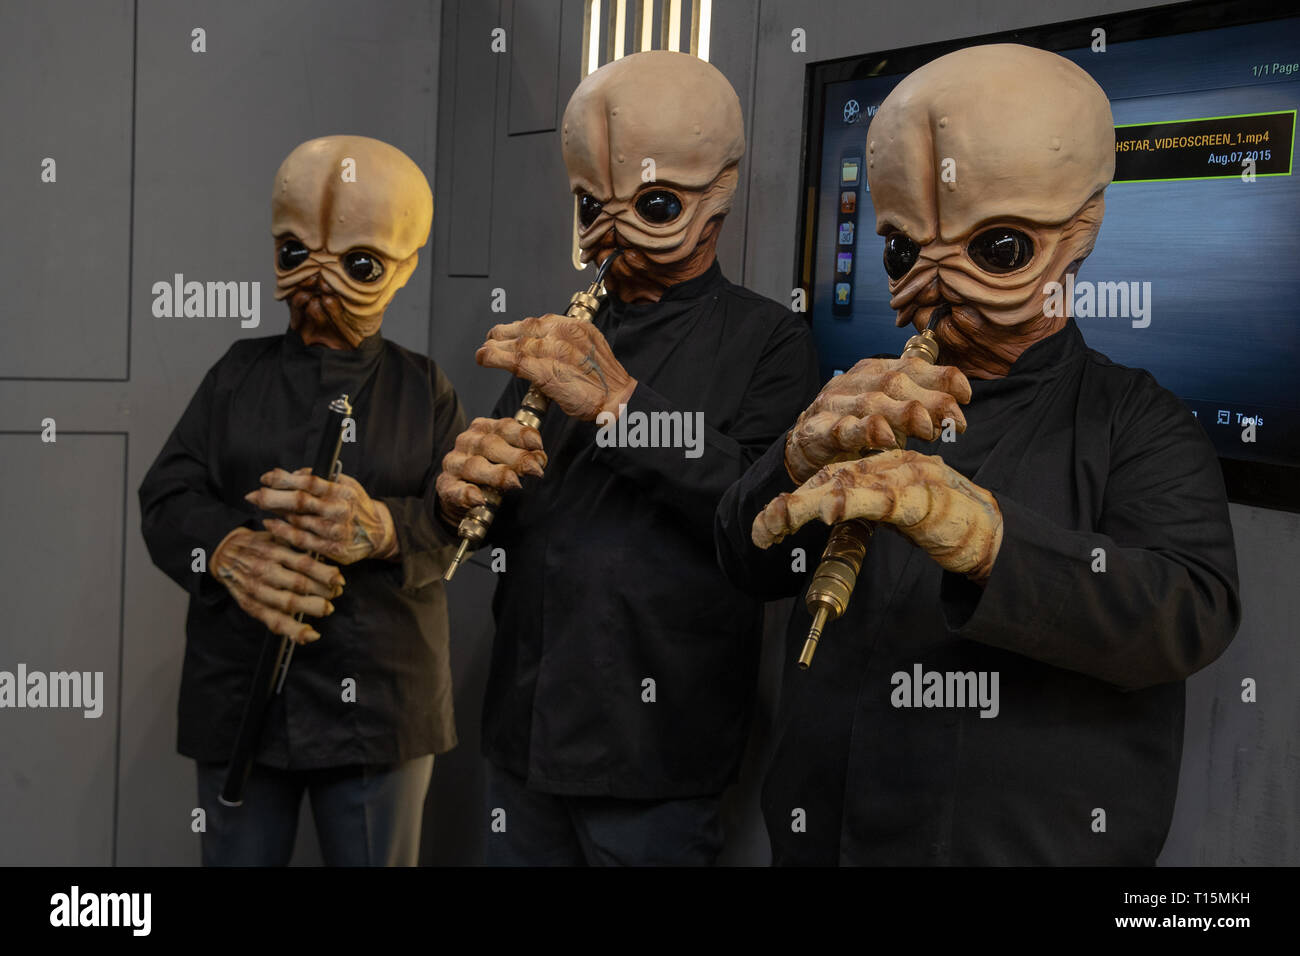 Birmingham, UK. Saturday 23 March 2019. Cosplayers performing as Figrin D'an and the Modal Nodes character from Star Wars: Episode IV A New Hope, on the 1st day of the MCM Comic Con Birmingham at the NEC  , © Jason Richardson / Alamy Live News - Stock Image